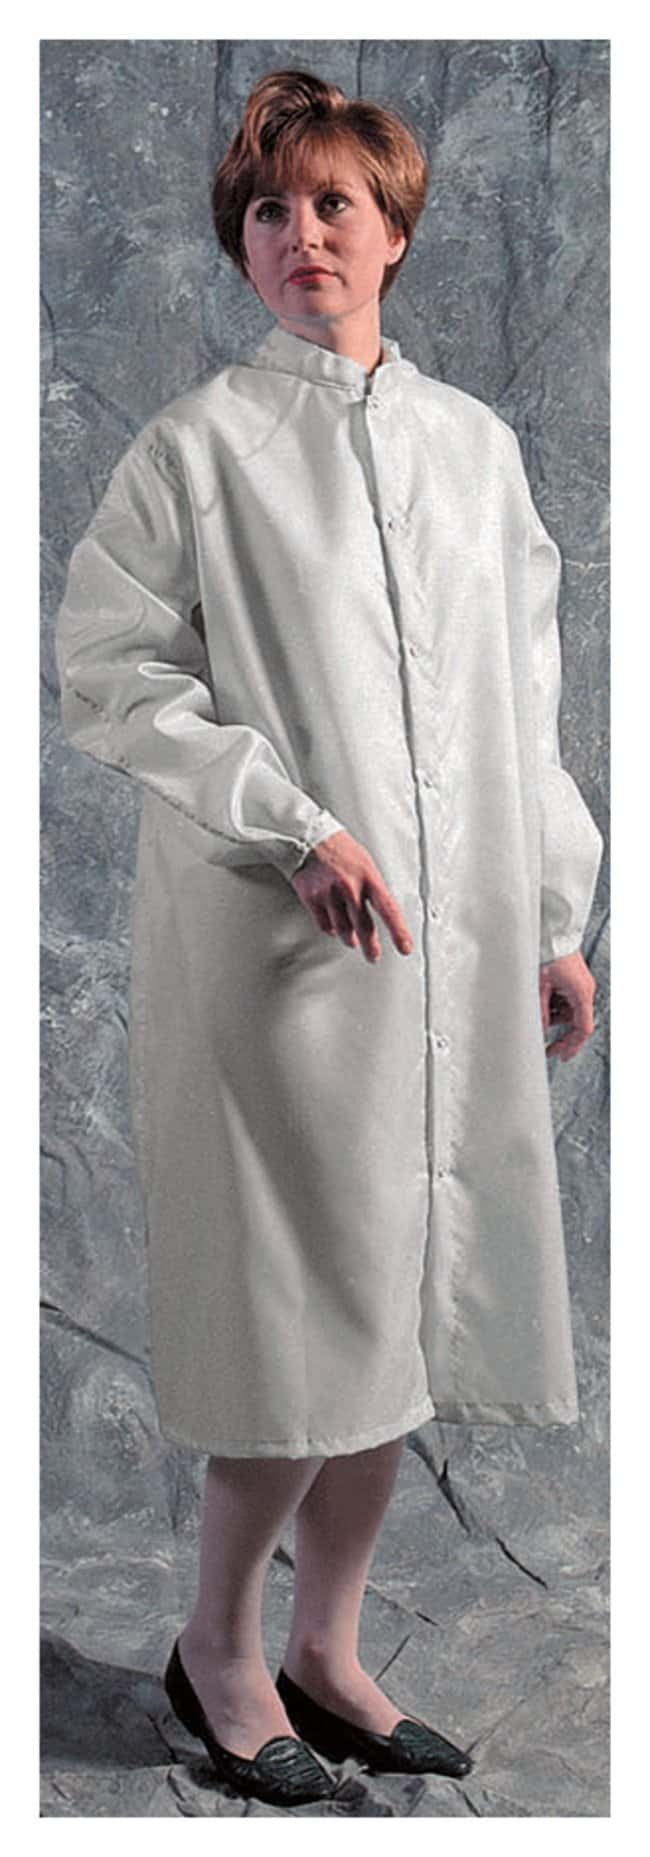 Vidaro Polyester Cleanroom Frocks:Gloves, Glasses and Safety:Controlled